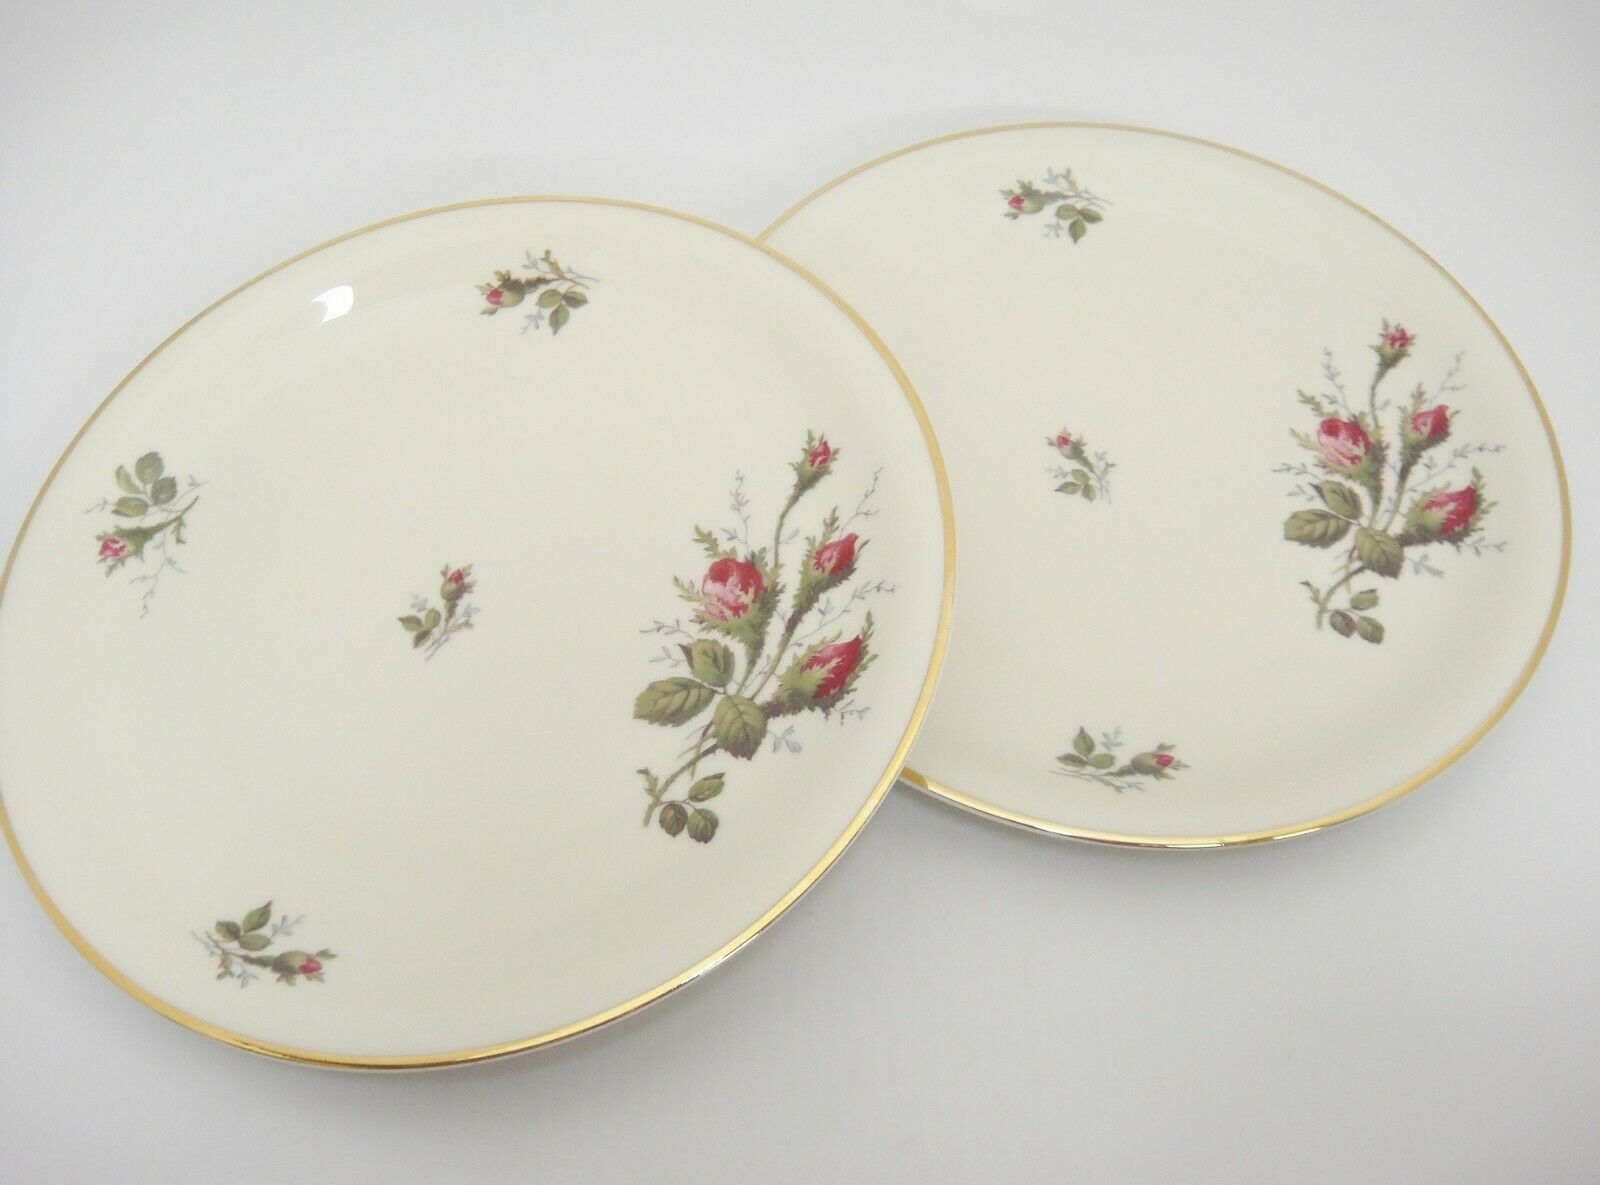 "Primary image for Rosenthal 2 8"" Salad Plates F33 22 15 Rosebuds Thorny Stems Gilded Edge Germany"